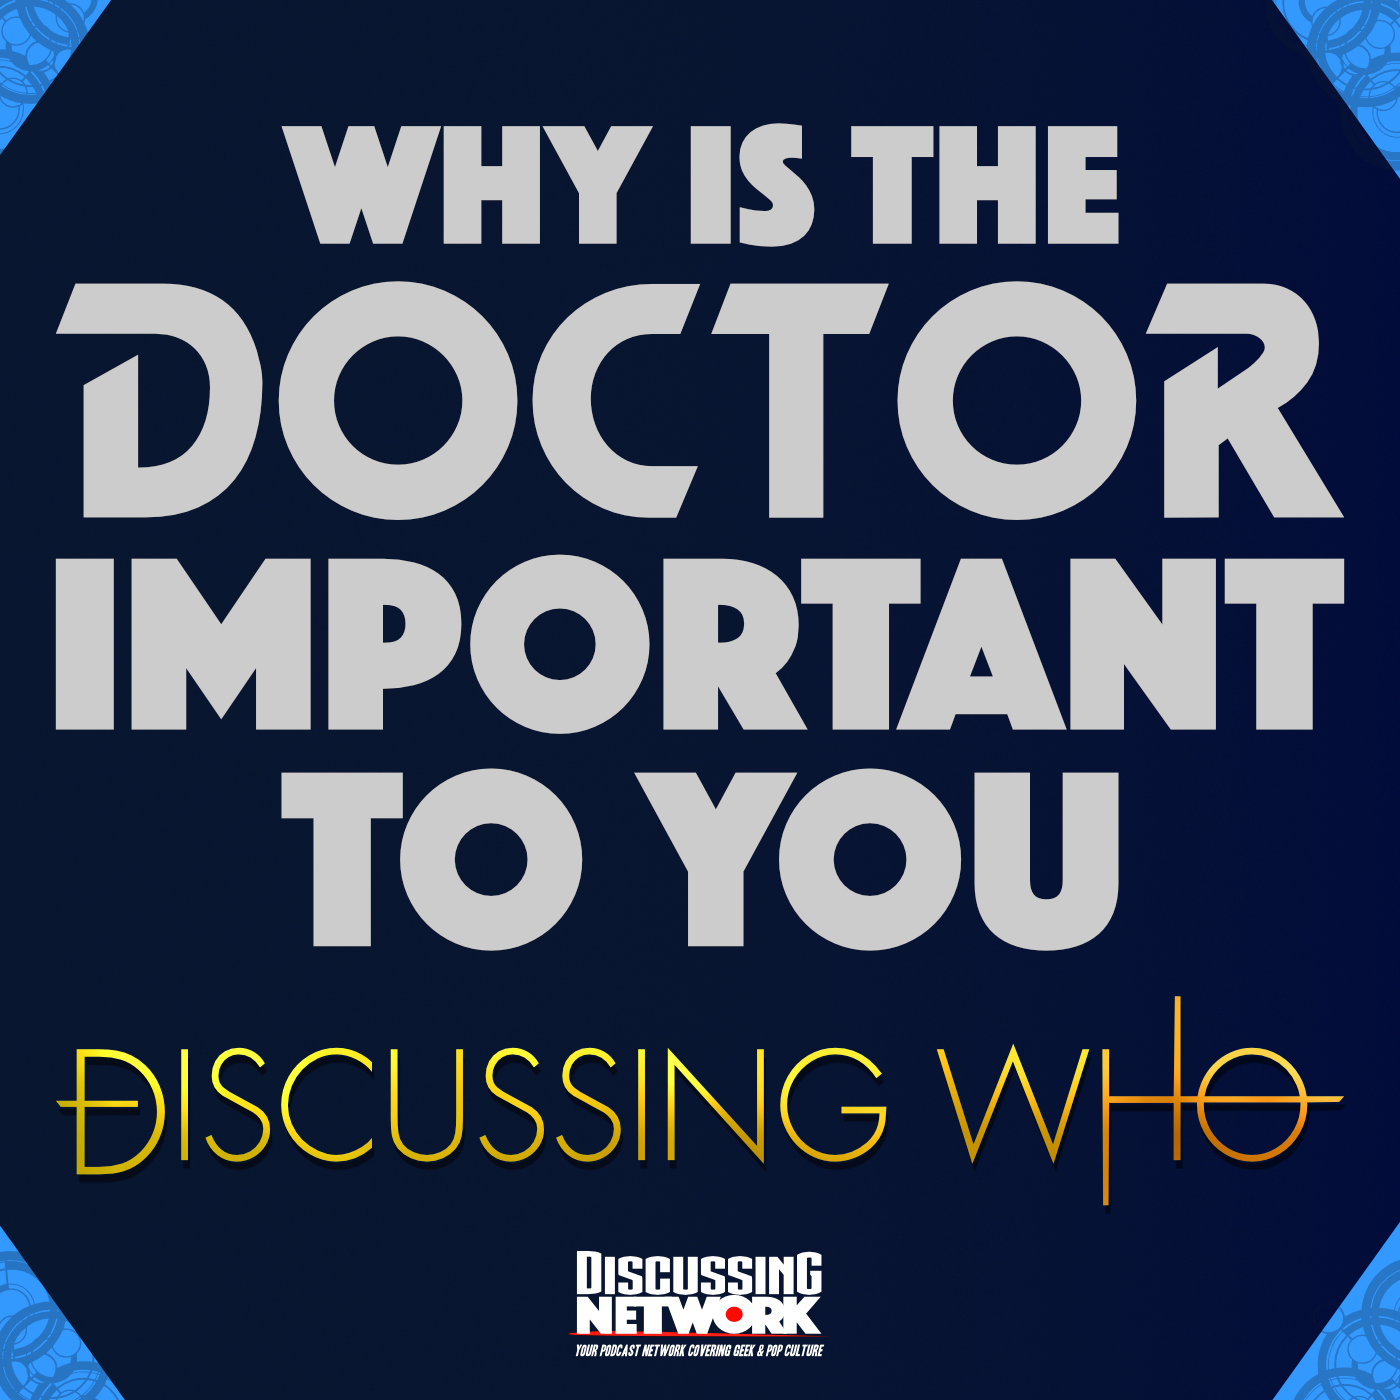 Why is the Doctor Important to You?